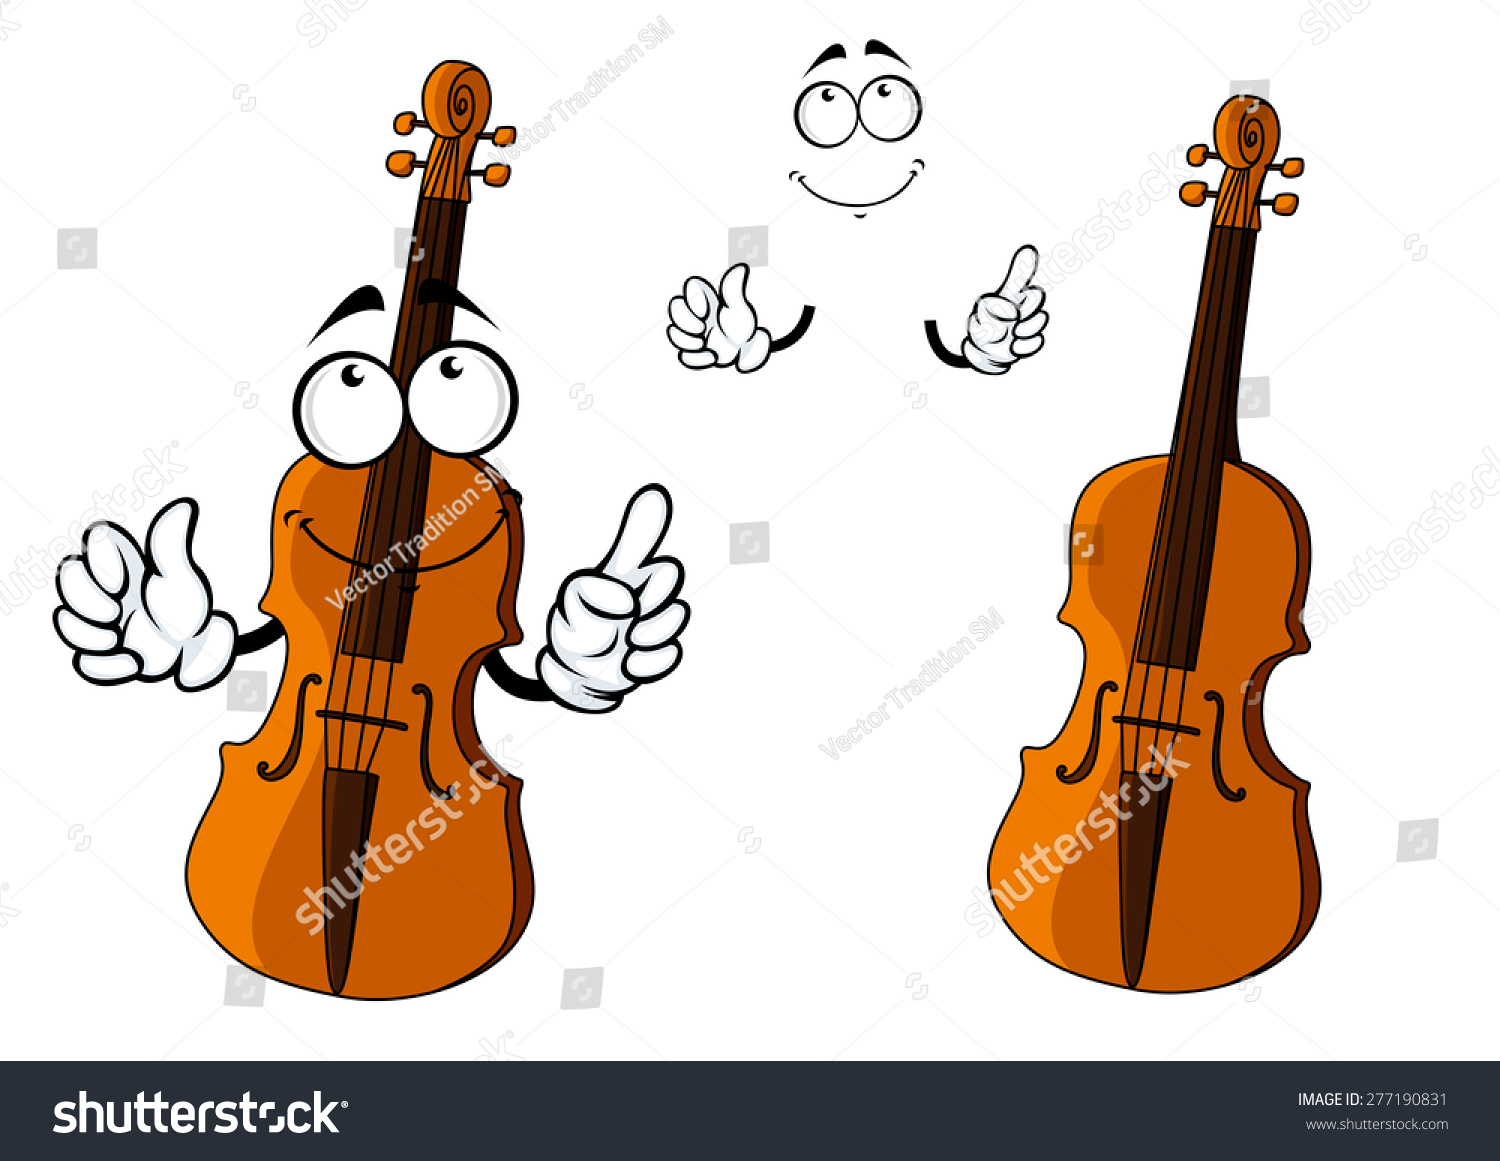 Cartoon Violin Images: Cartoon Brown Violin Instrument Character Happy Stock